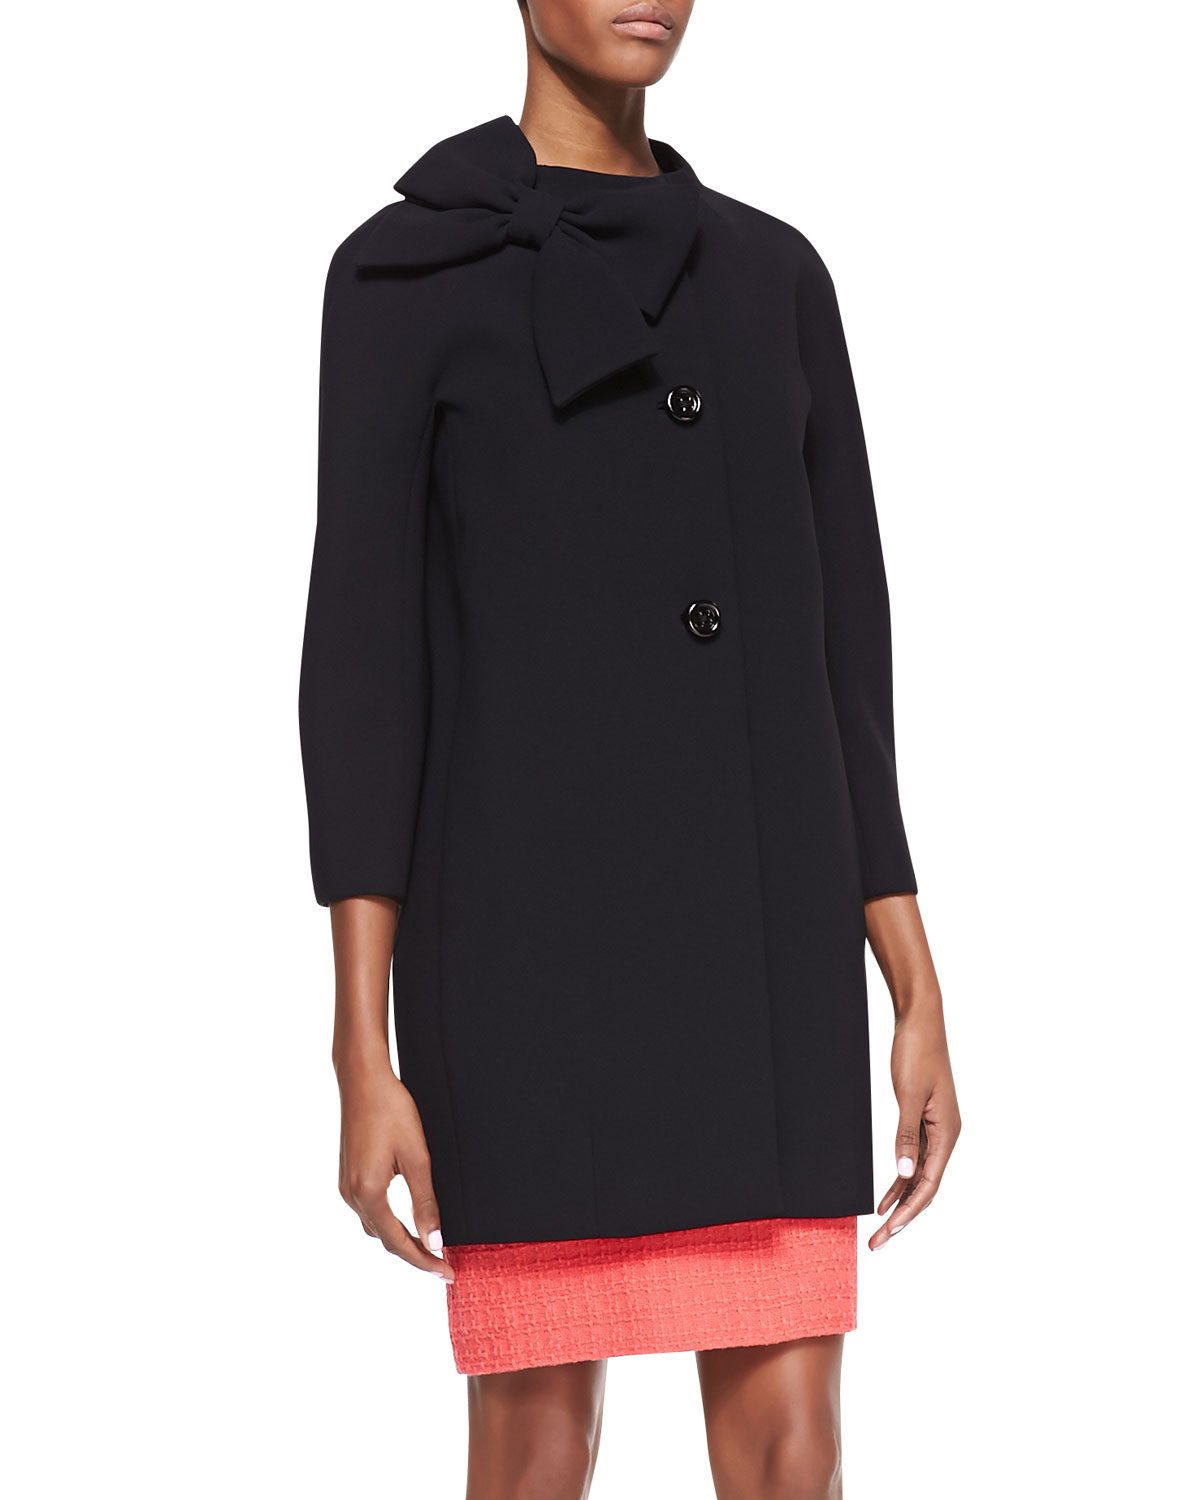 Kate spade new york Dorothy Coat with Side Collar Bow Black in ...